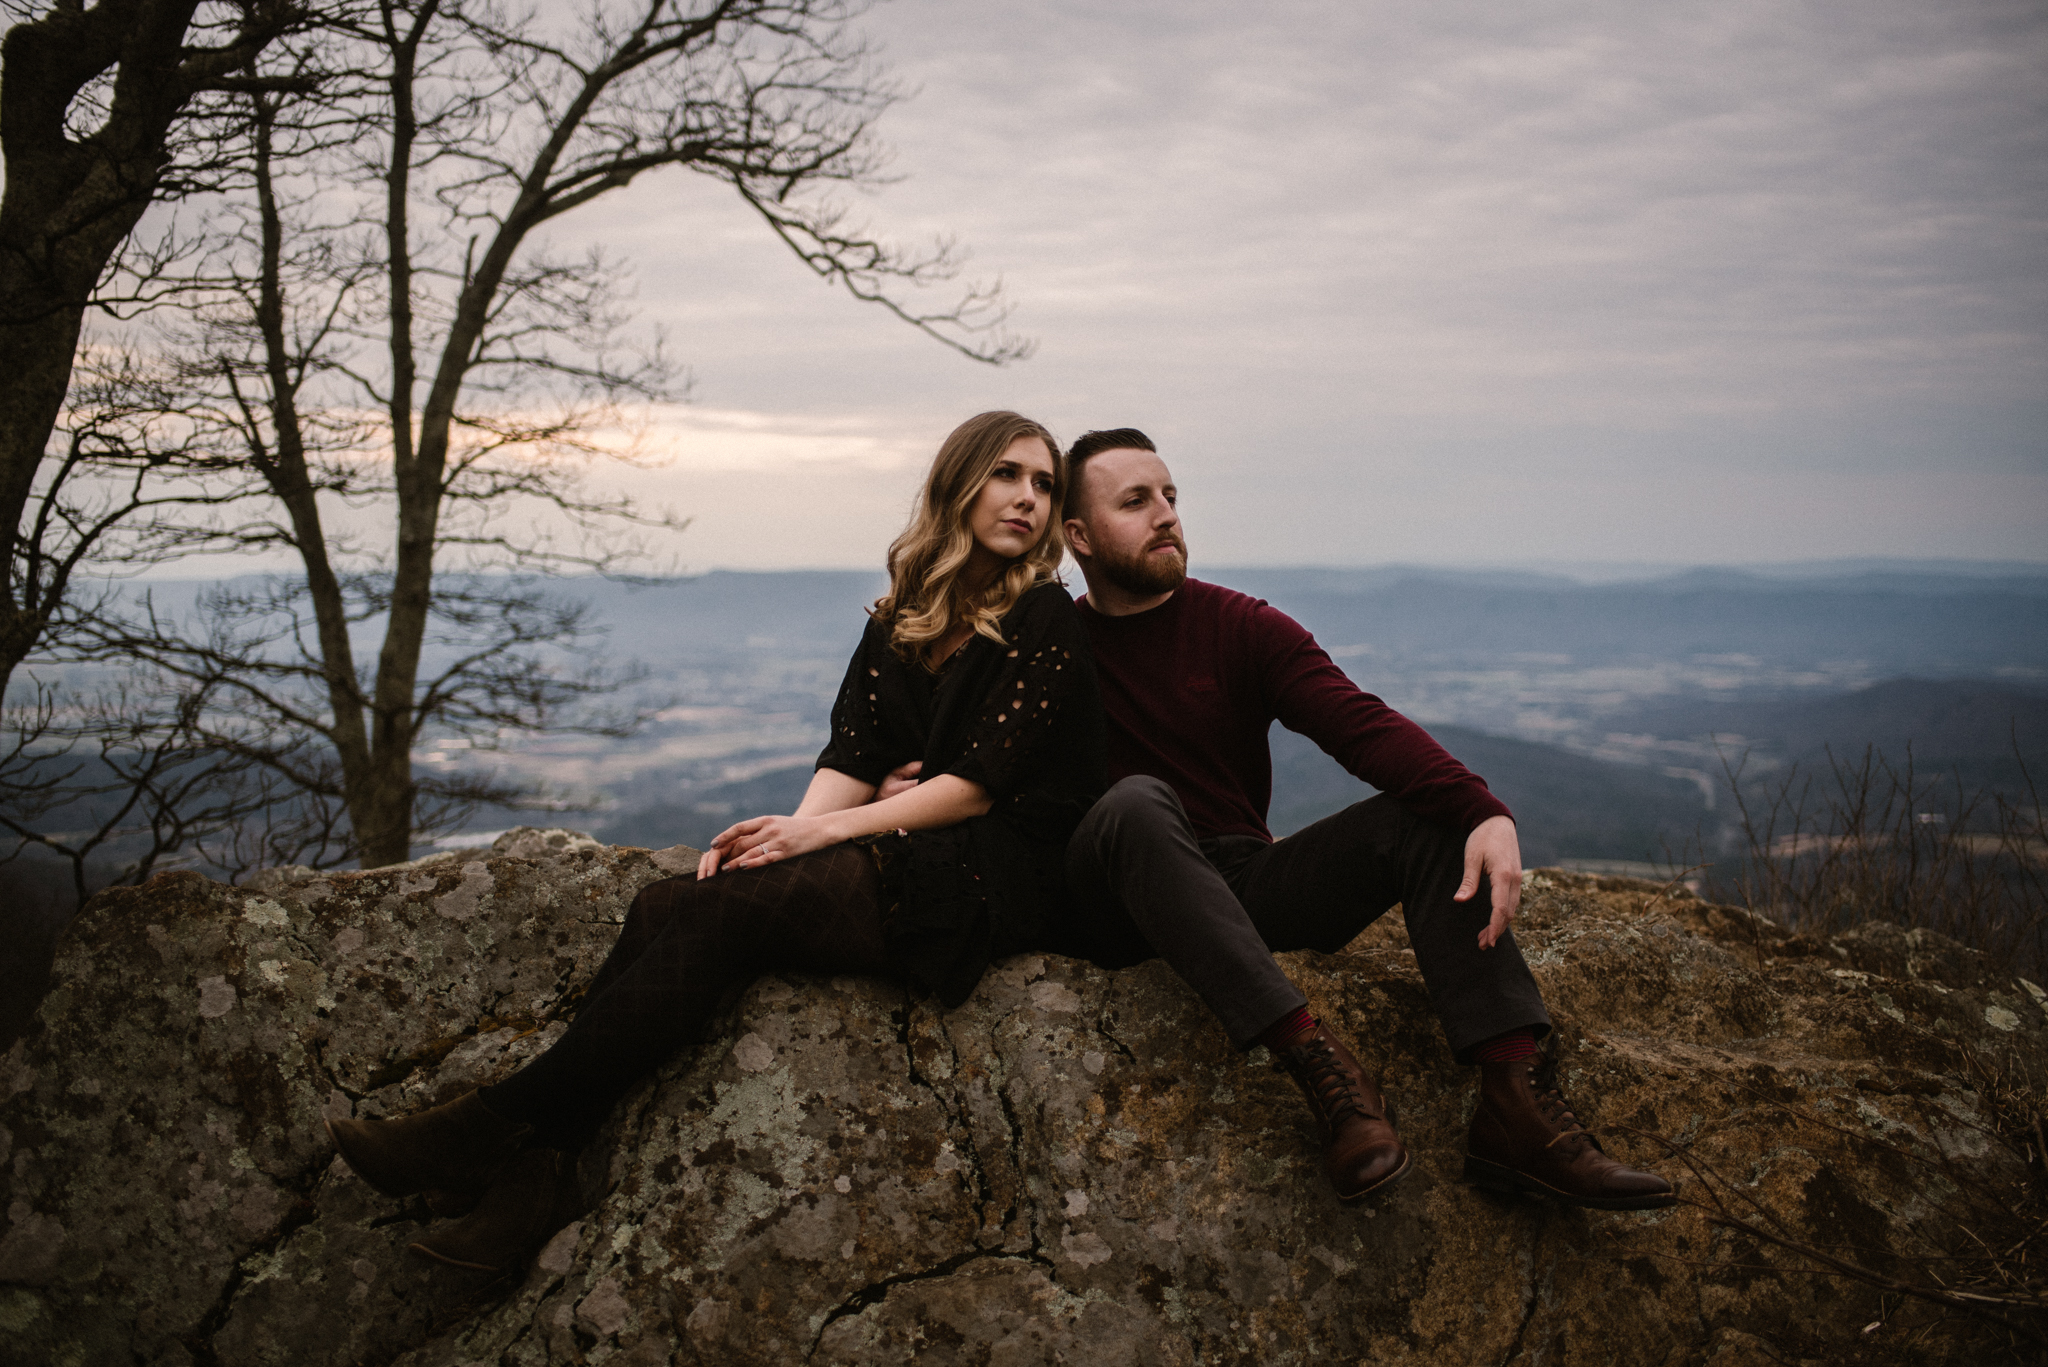 Nicole and Victor - Shenandoah National Park Engagement Photography - Blue Ridge Mountains Adventure Photography - White Sails Creative Photography_17.jpg